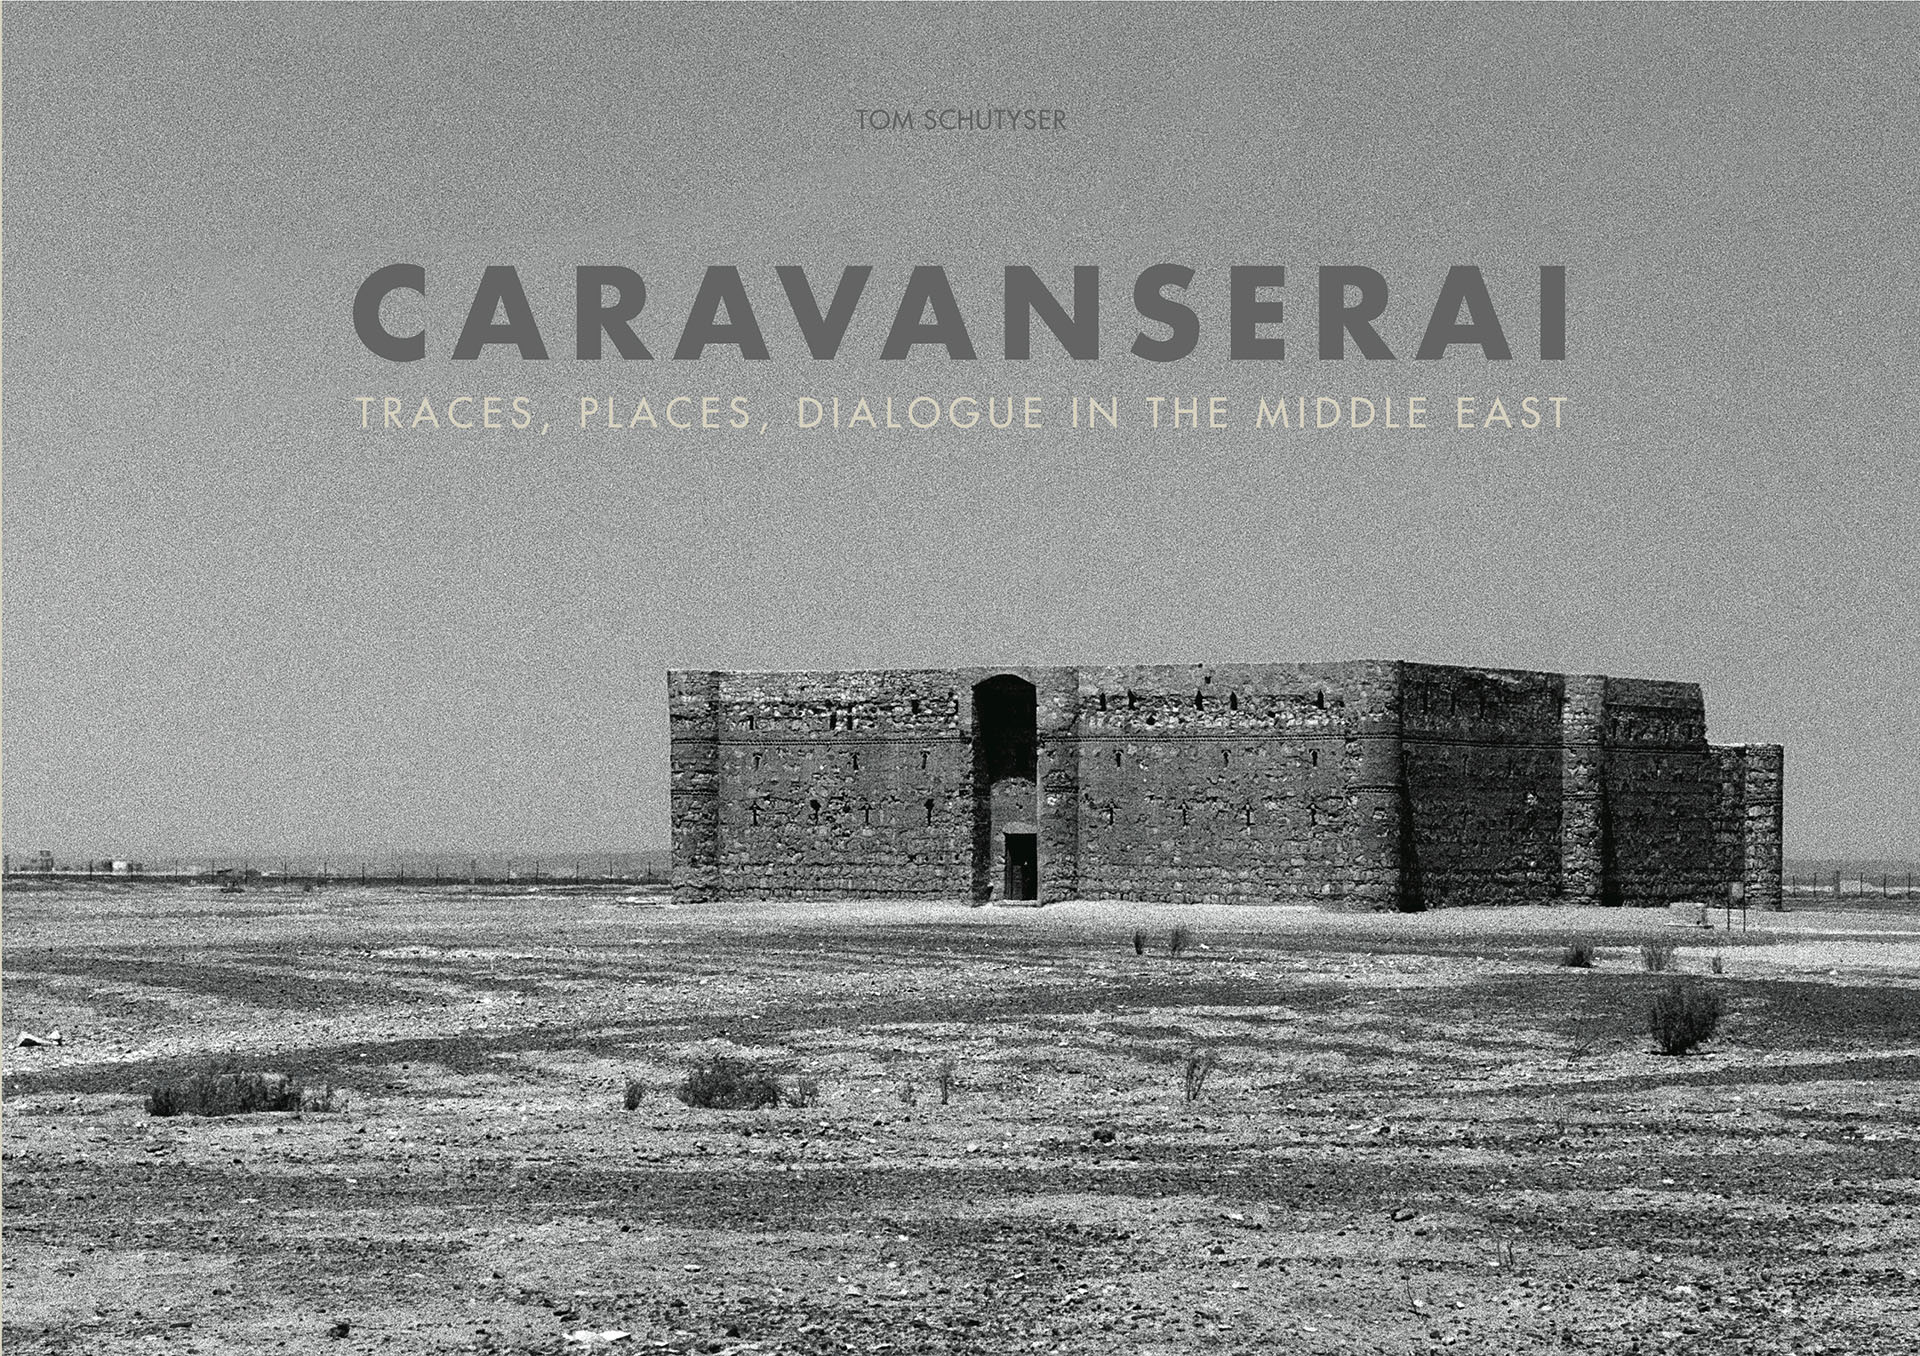 Caravanserai Photography 5 Continents Editions